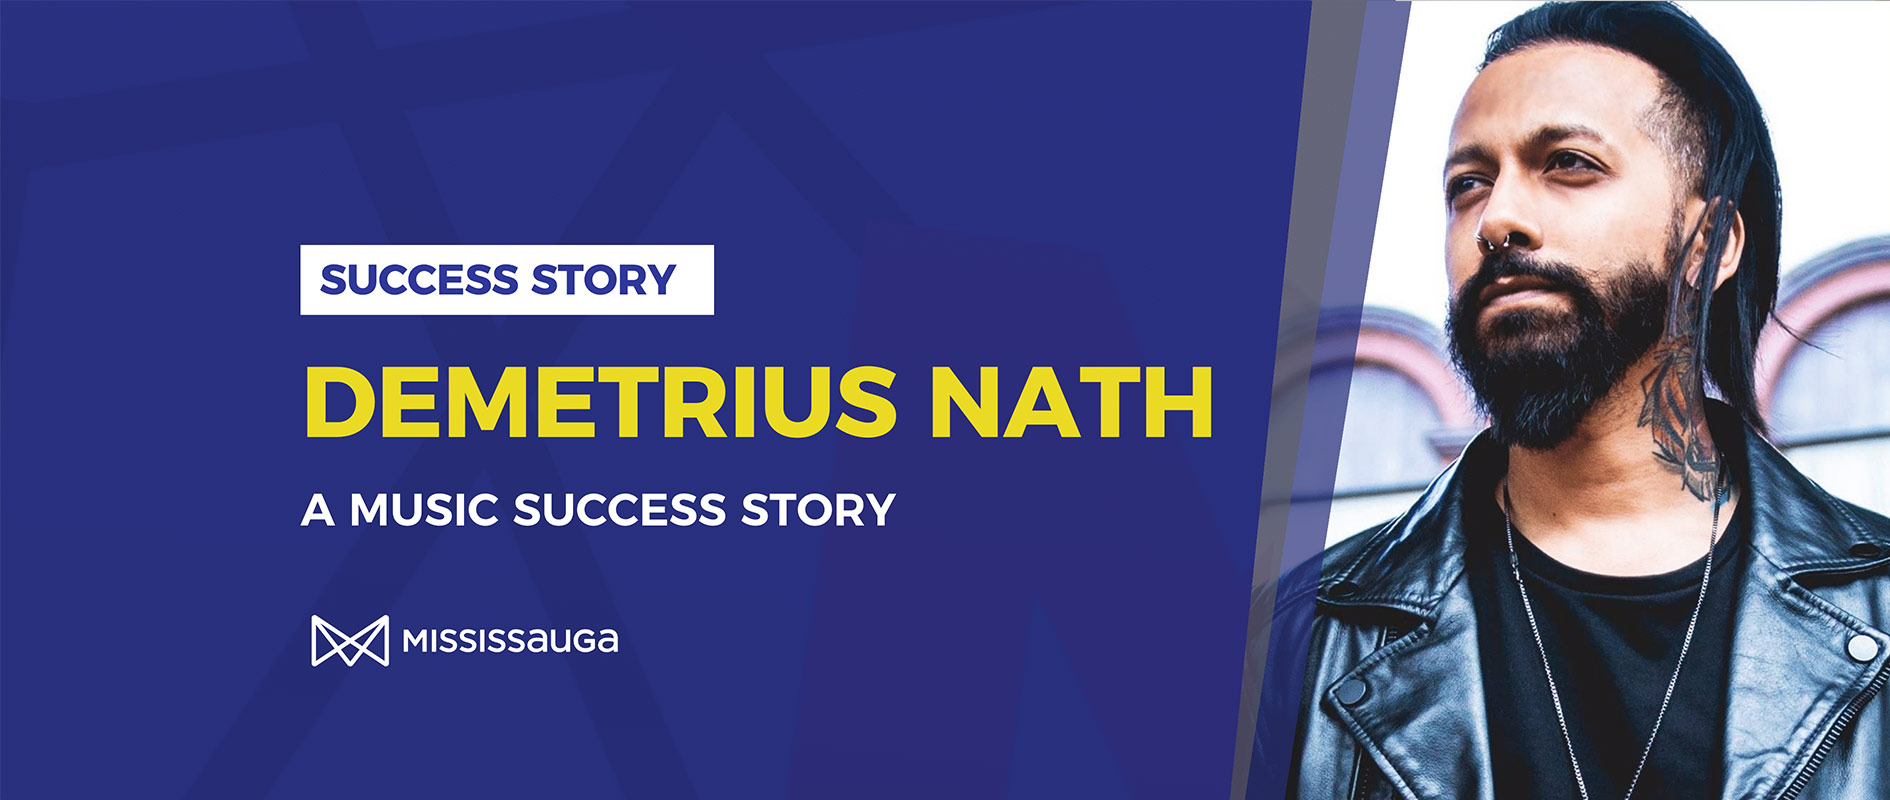 Demetrius Nath: Music Success Story